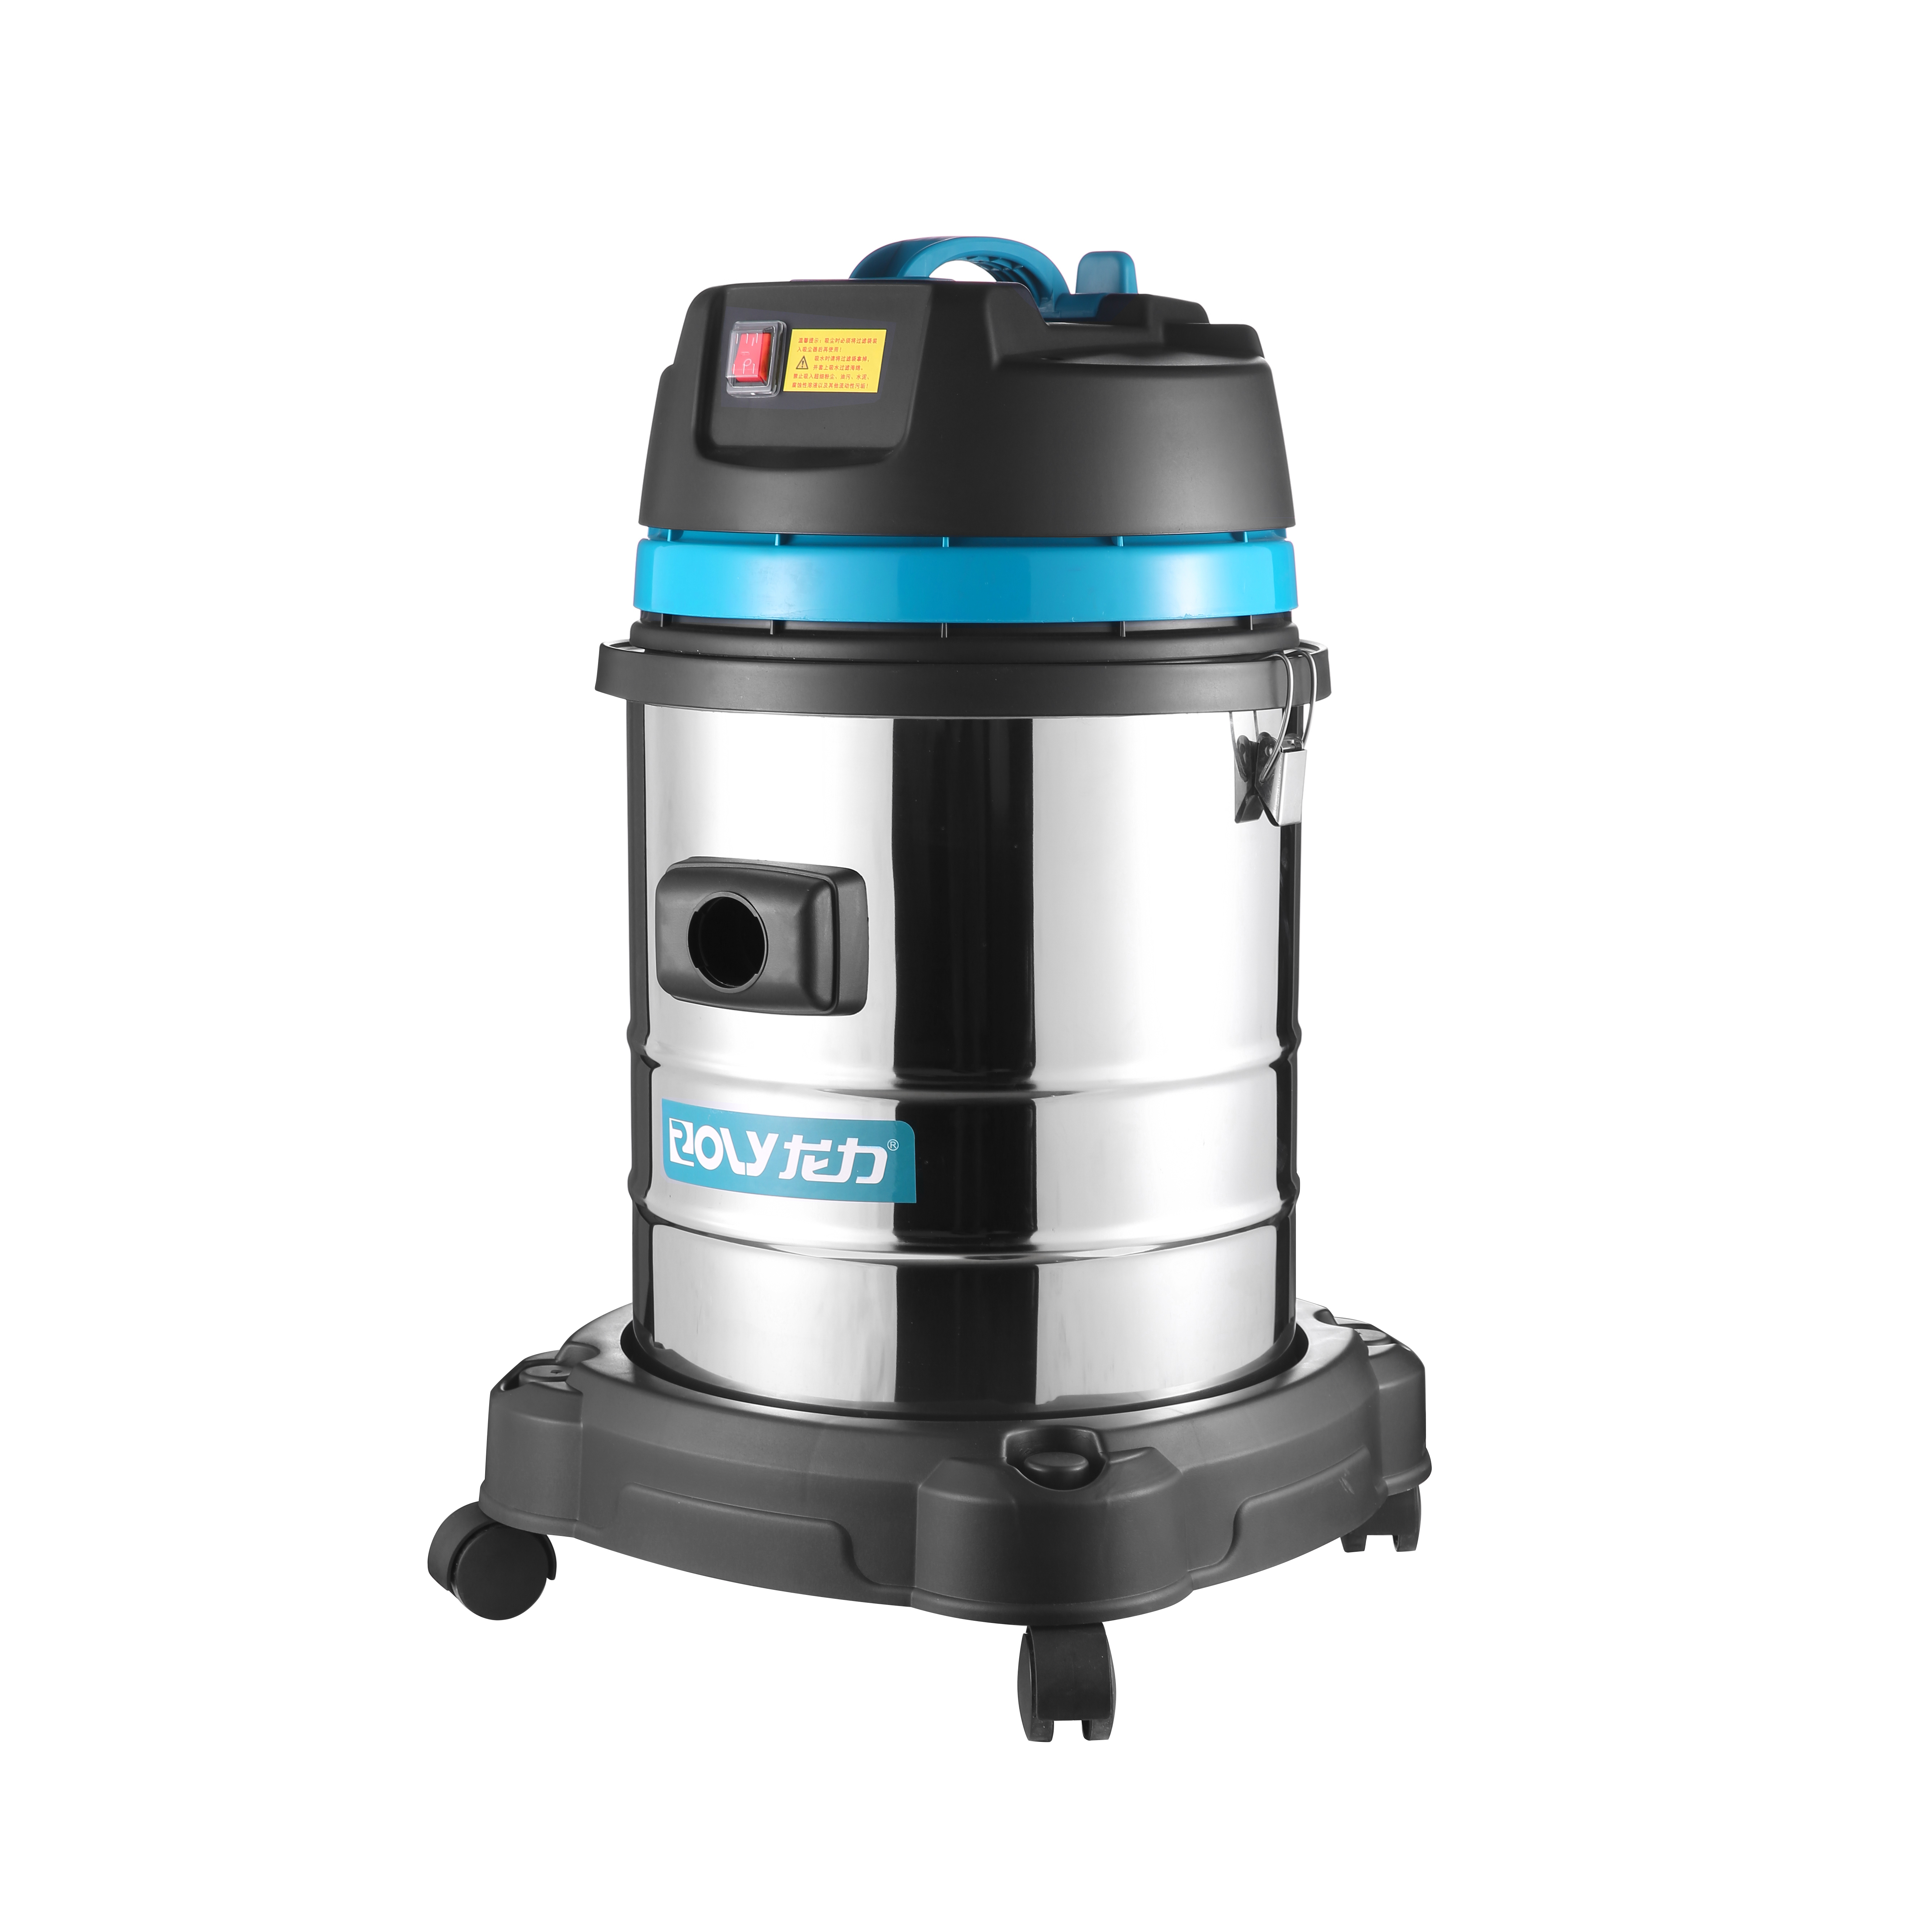 WL098 powerful commercial car wash vacuum cleaner